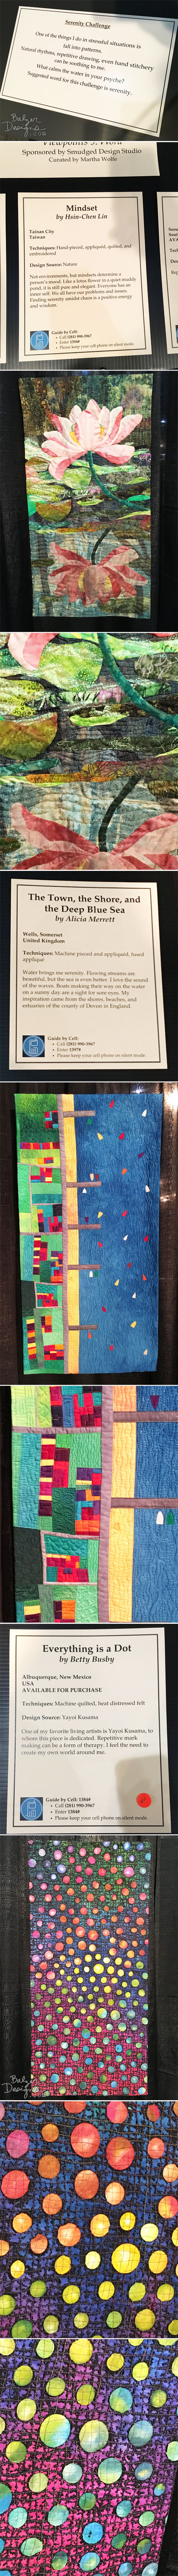 From the Balzer Designs Blog: Quilt Festival 2017: Part Eight